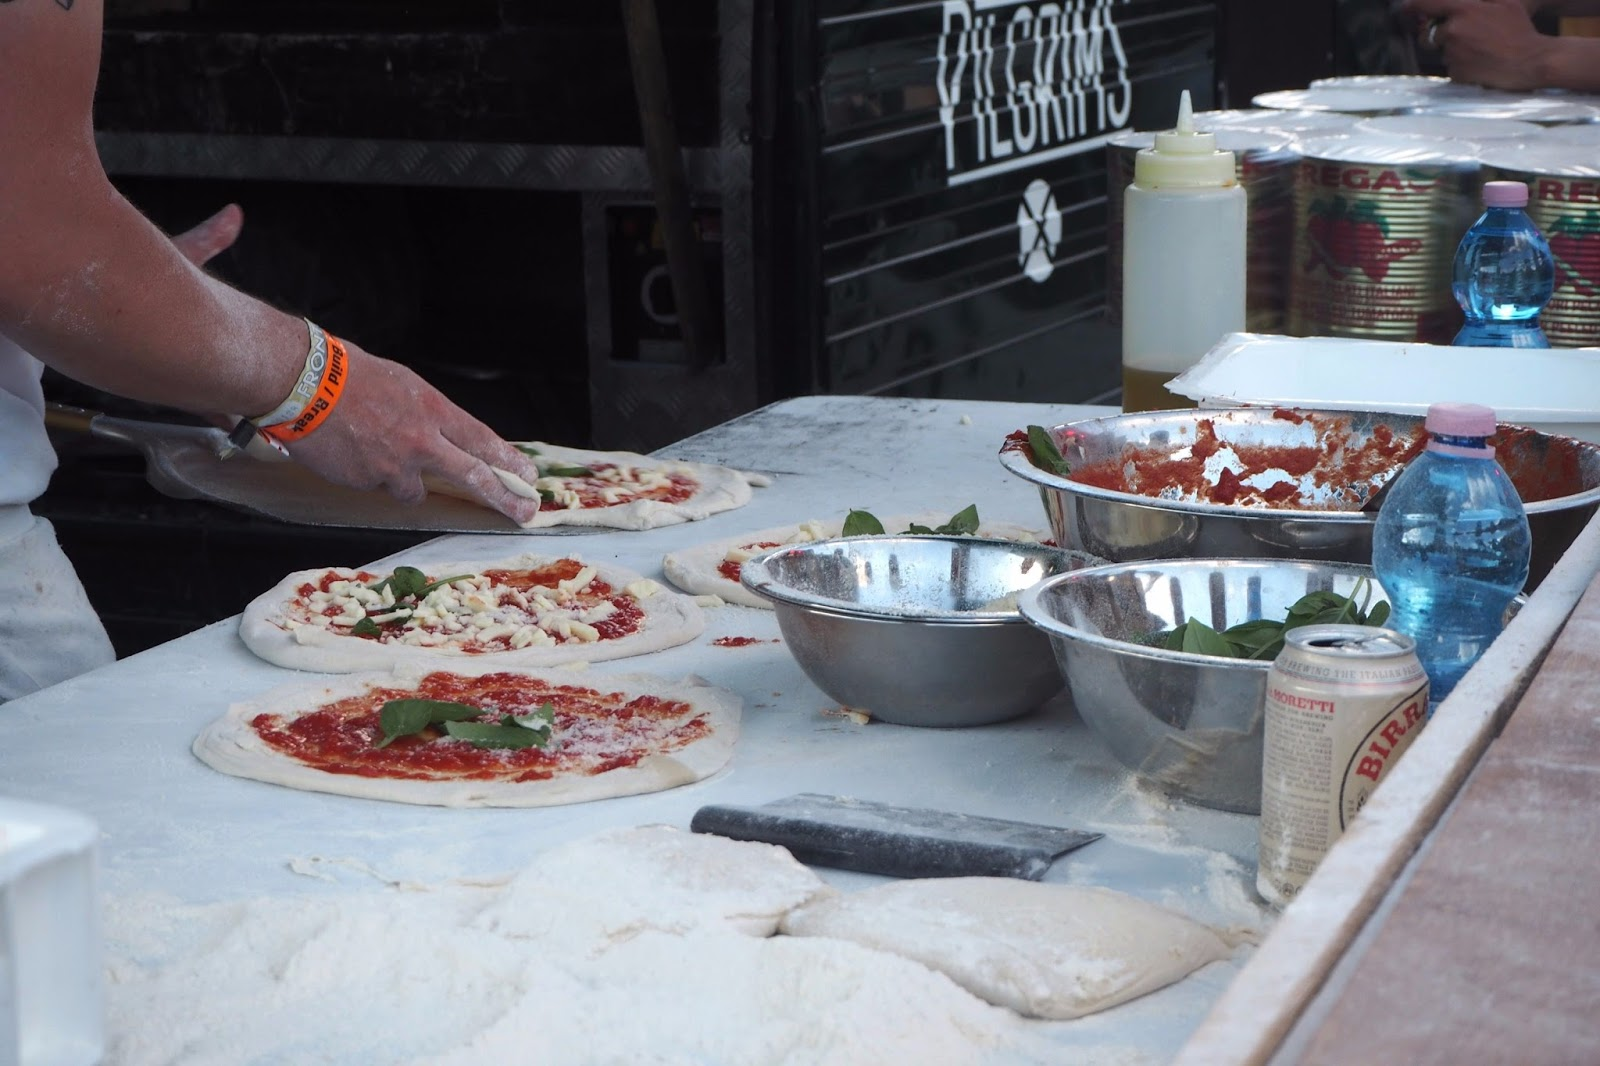 Pizzas being made